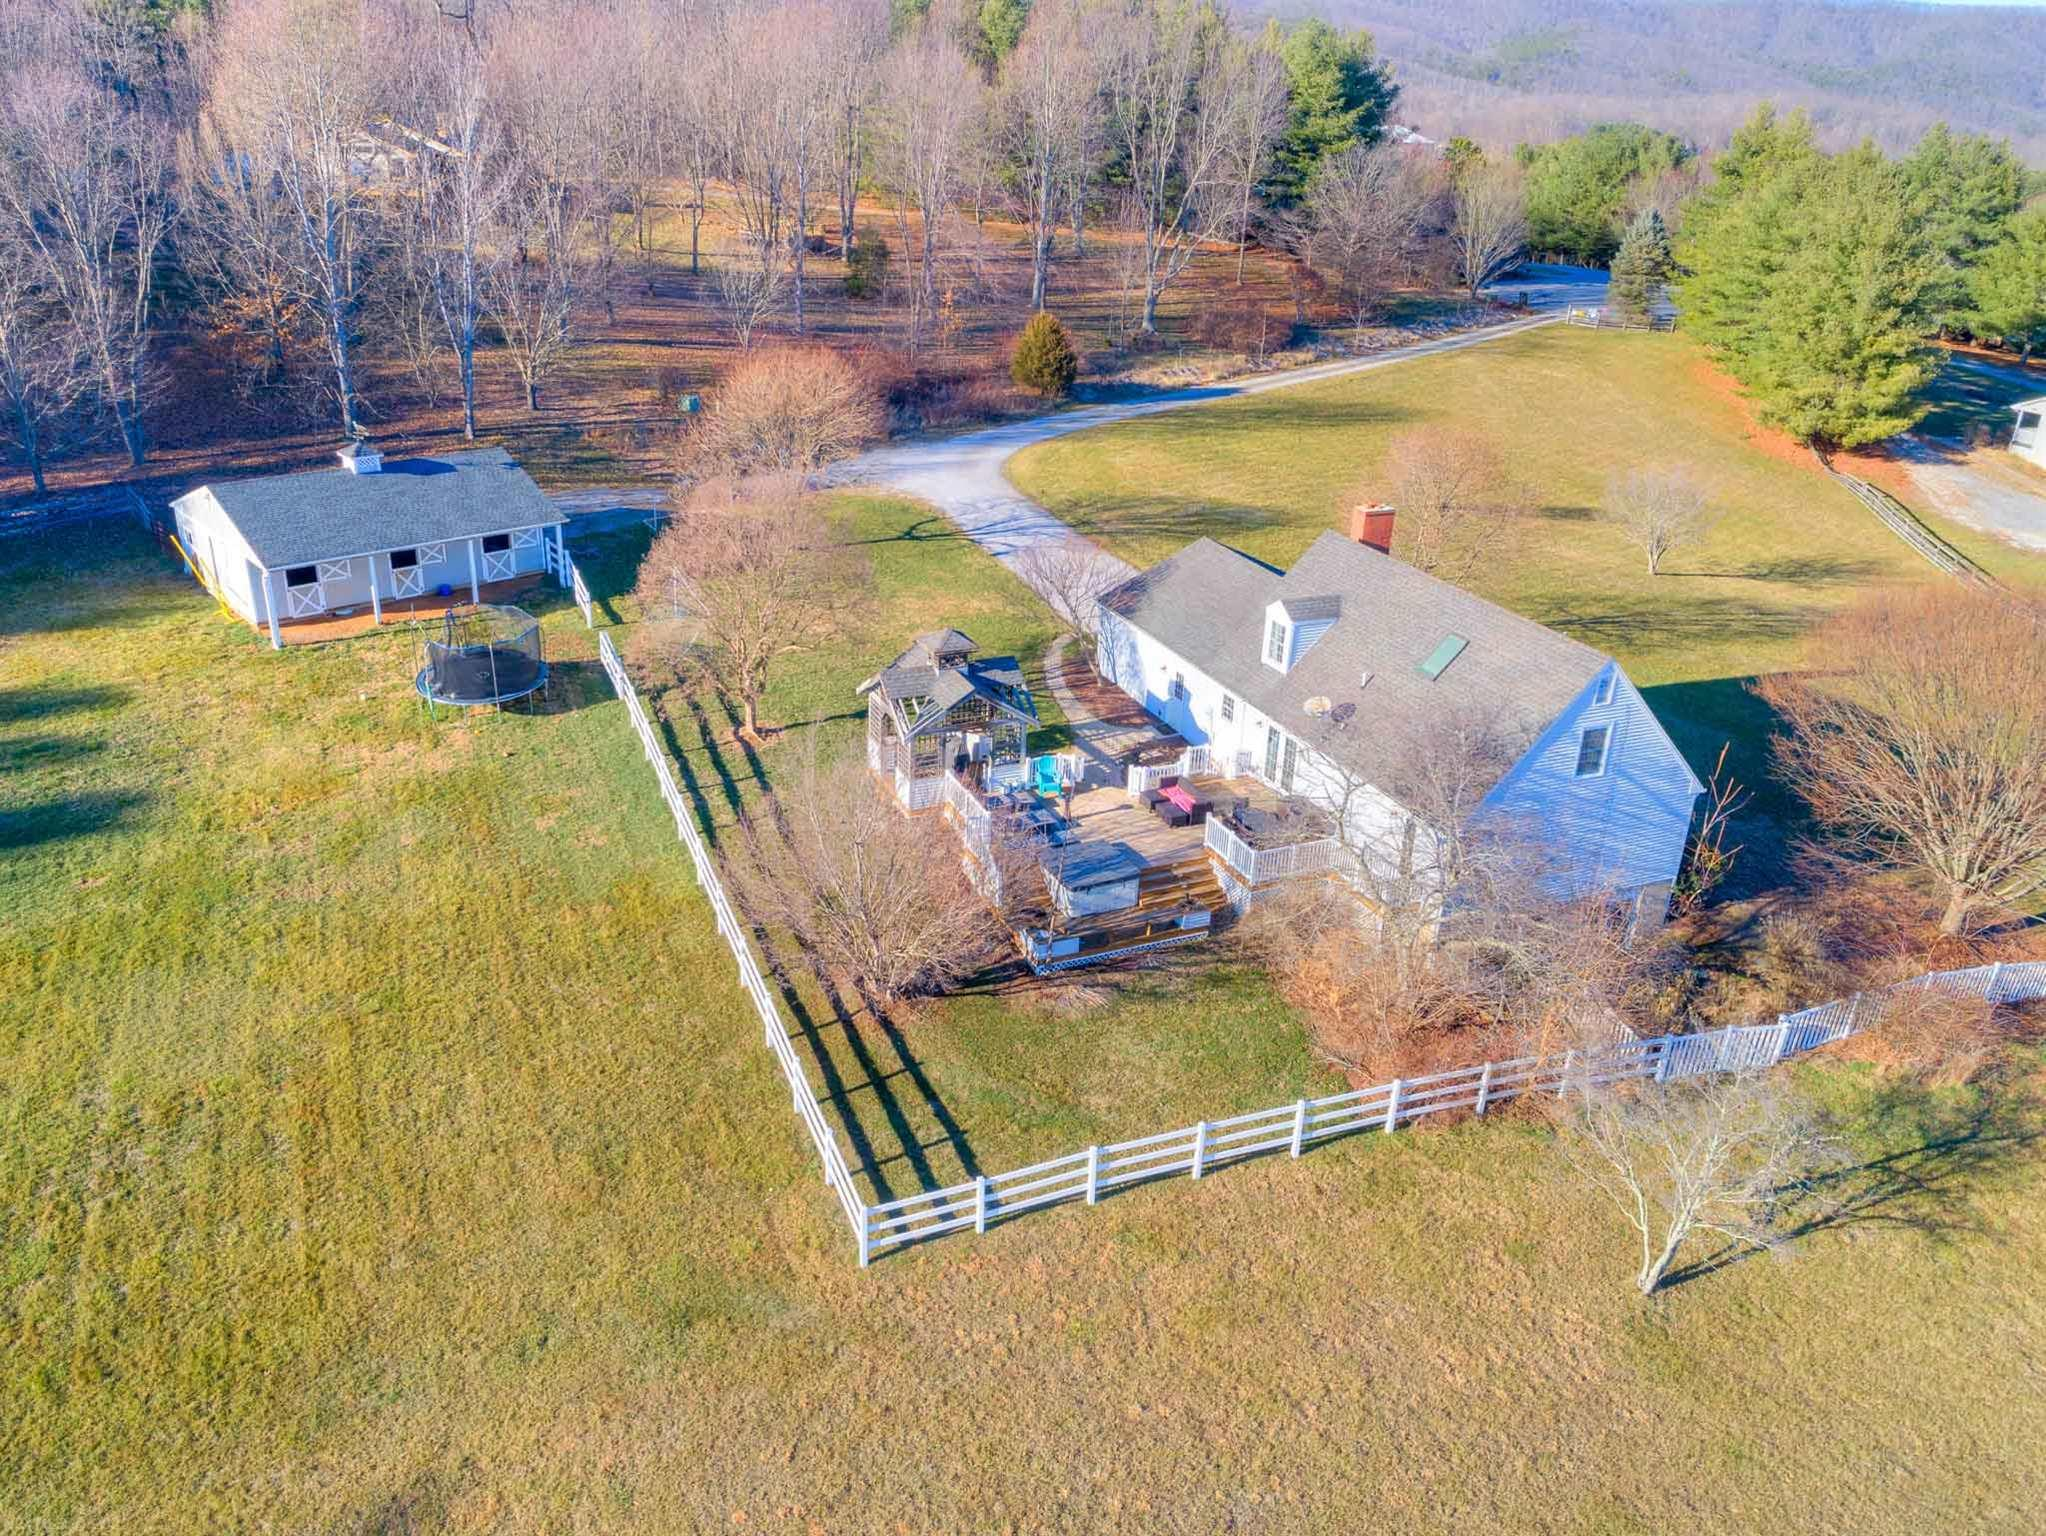 Updated cape cod on 4.7 acres with a 3 stall barn...only 2.5 miles to North Main Street in Blacksburg!  This property has so much to offer: beautiful views, fenced pasture, quiet cul-de-sac location, multi deck with hot tub to name a few!  The main level of the home includes a living room with a fireplace and beautiful custom mantle; eat in kitchen with solid surface counter tops, new appliances, double oven and slider to the deck; two generously sized bedrooms, an updated full bath and an oversized two car garage.  The entire upper level is a master suite with vaulted ceilings, skylights and walk-in closet.  The walk-out basement is plumbed for a 3rd bath and has a ton of potential to expand your living space.   A few add'l extras include a whole house water filter and a flue in basement for a woodstove.  The barn has a tack room, electric and water spigot for convenience.  Grocery shopping and access to the 460 by-pass are just a few miles away.  Get the rural feel minutes from town!